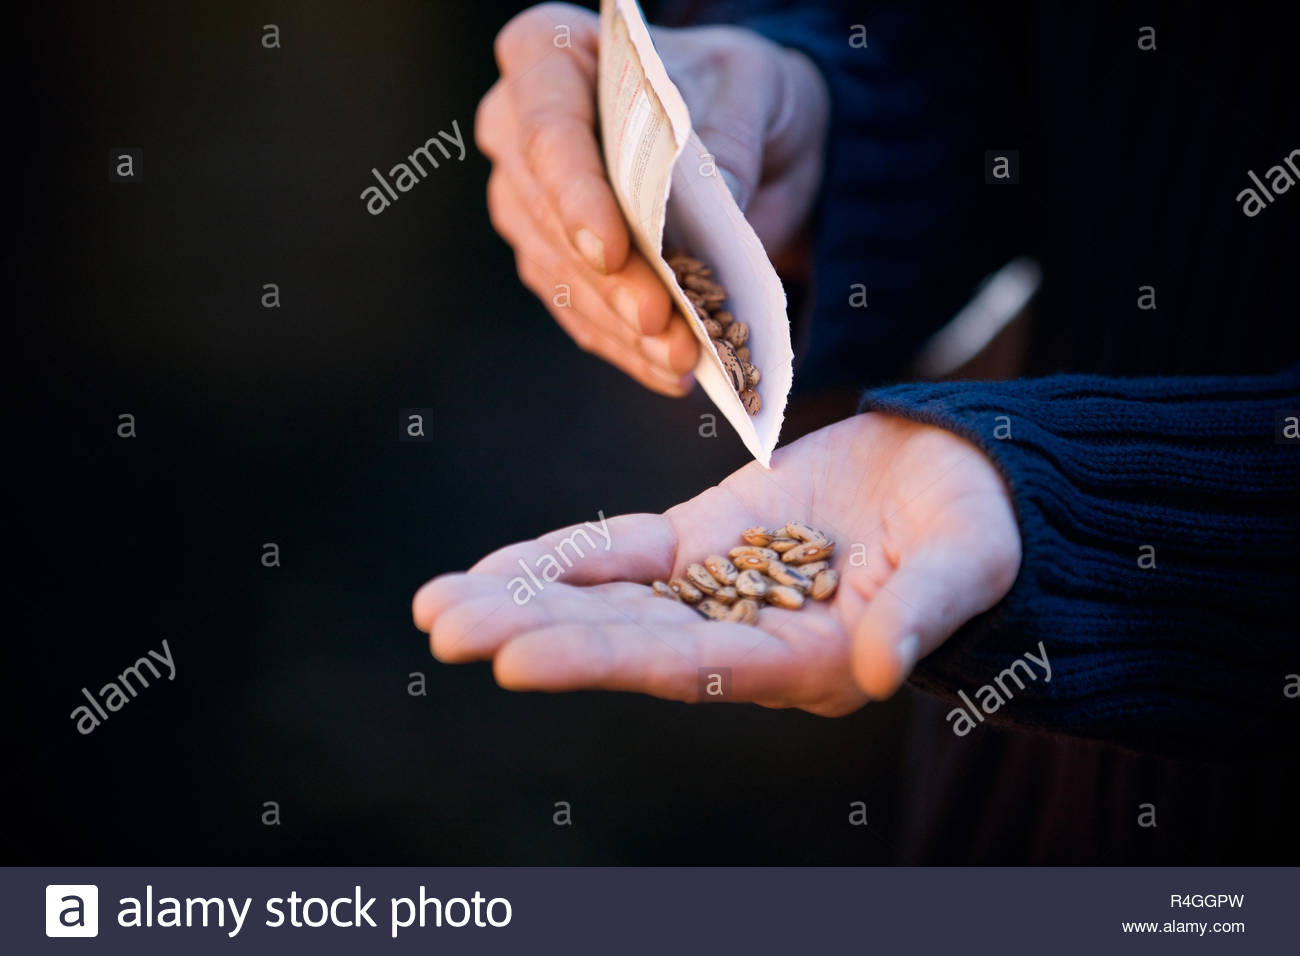 A man pouring seeds into his hand - Stock Image